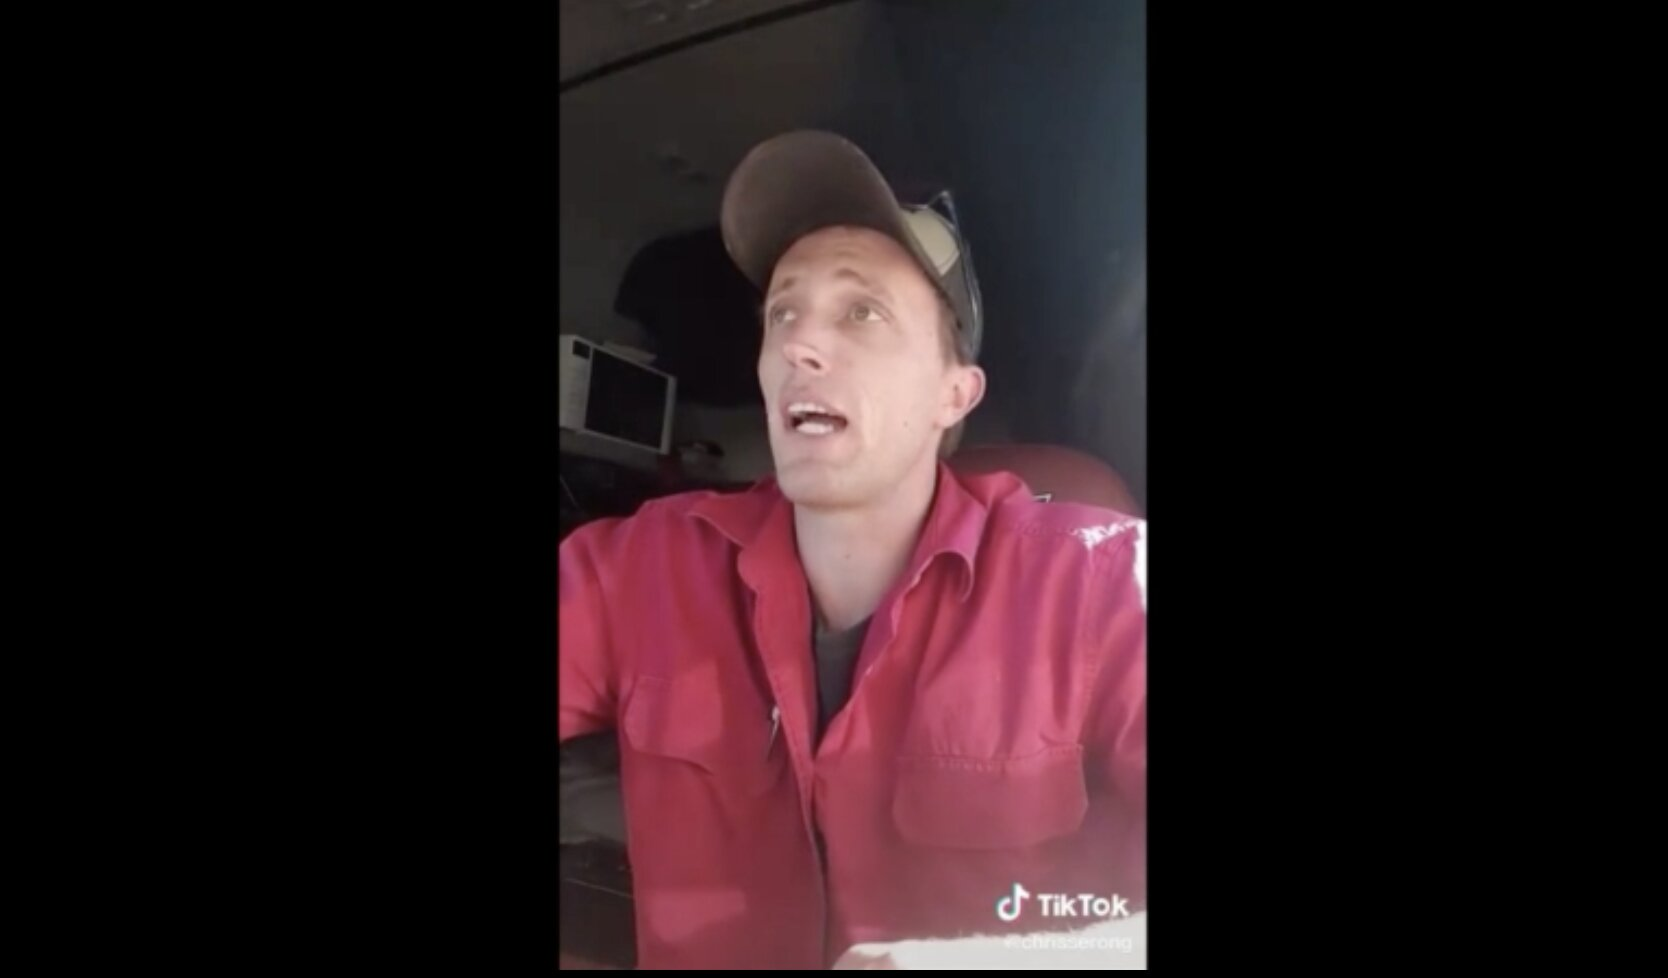 Australian Truckers Warn Citizens to Stock Up on Food as They Prepare to Take Over the Country From The Satanic Politicians Forcing Their Poison Injections On Adults And Defenseless Children